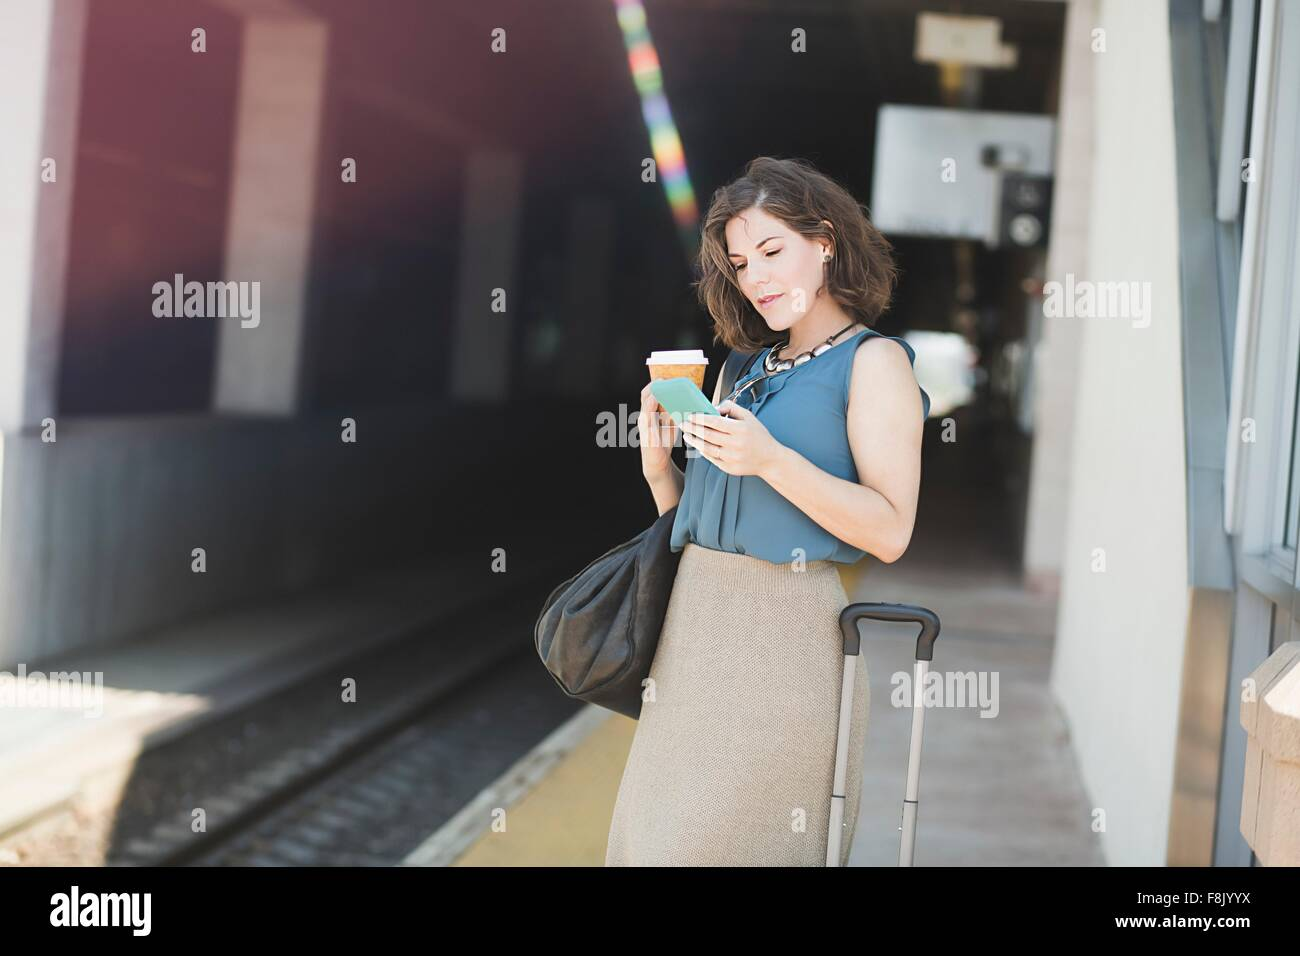 Mid adult woman en attente à la gare, l'utilisation de smartphone, holding Coffee cup Photo Stock